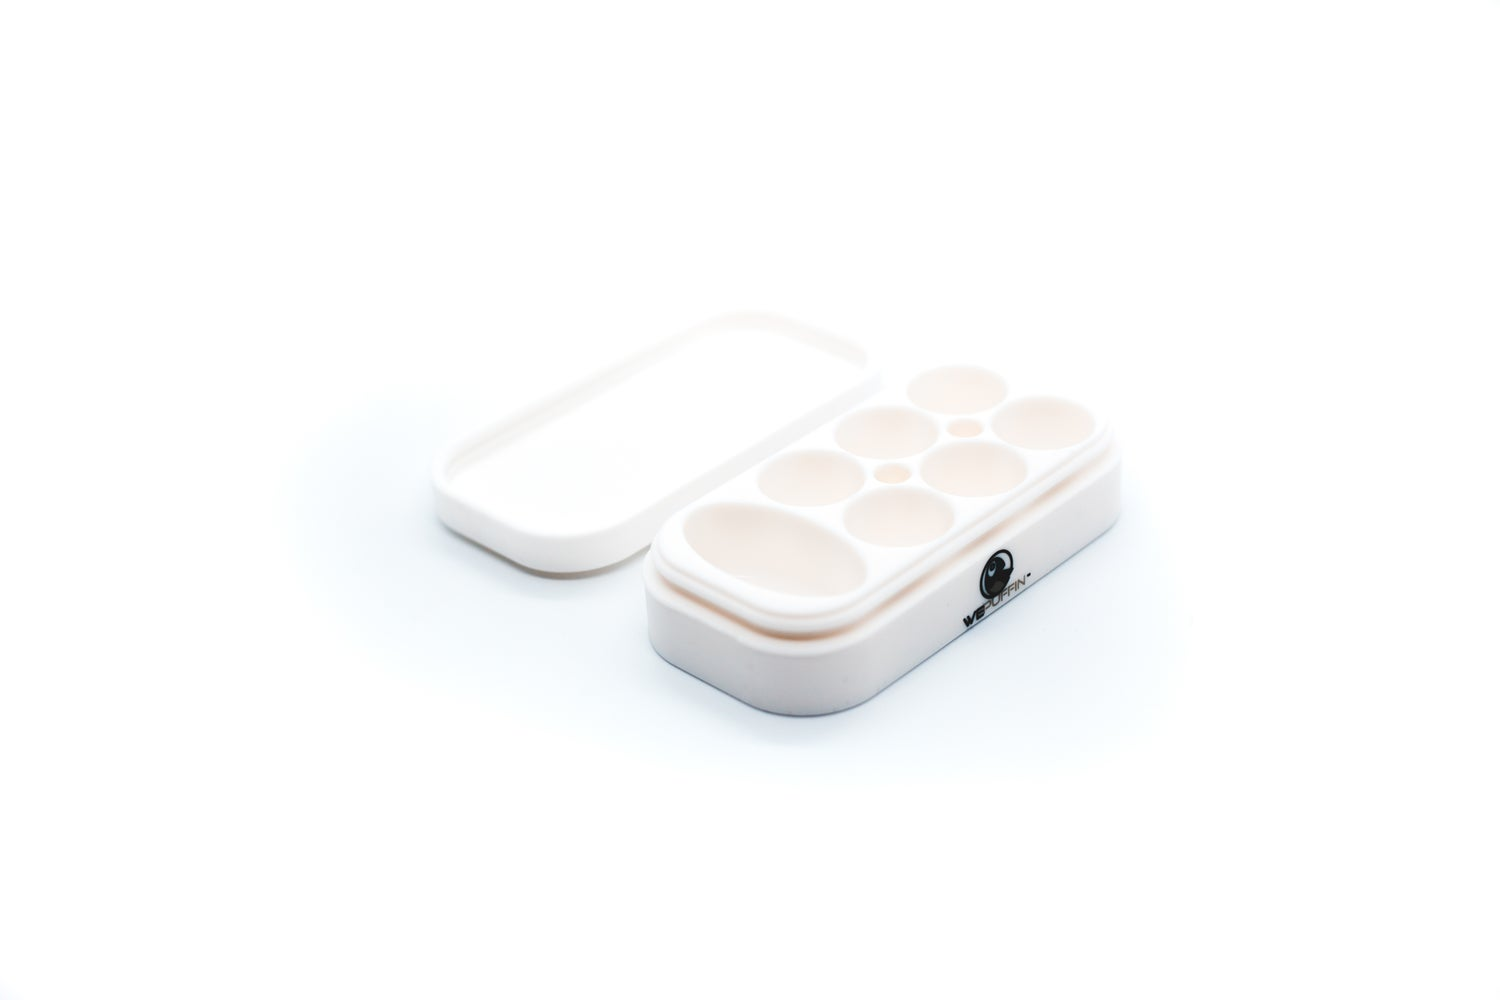 Image of WePuffin Silicone Dab Kit